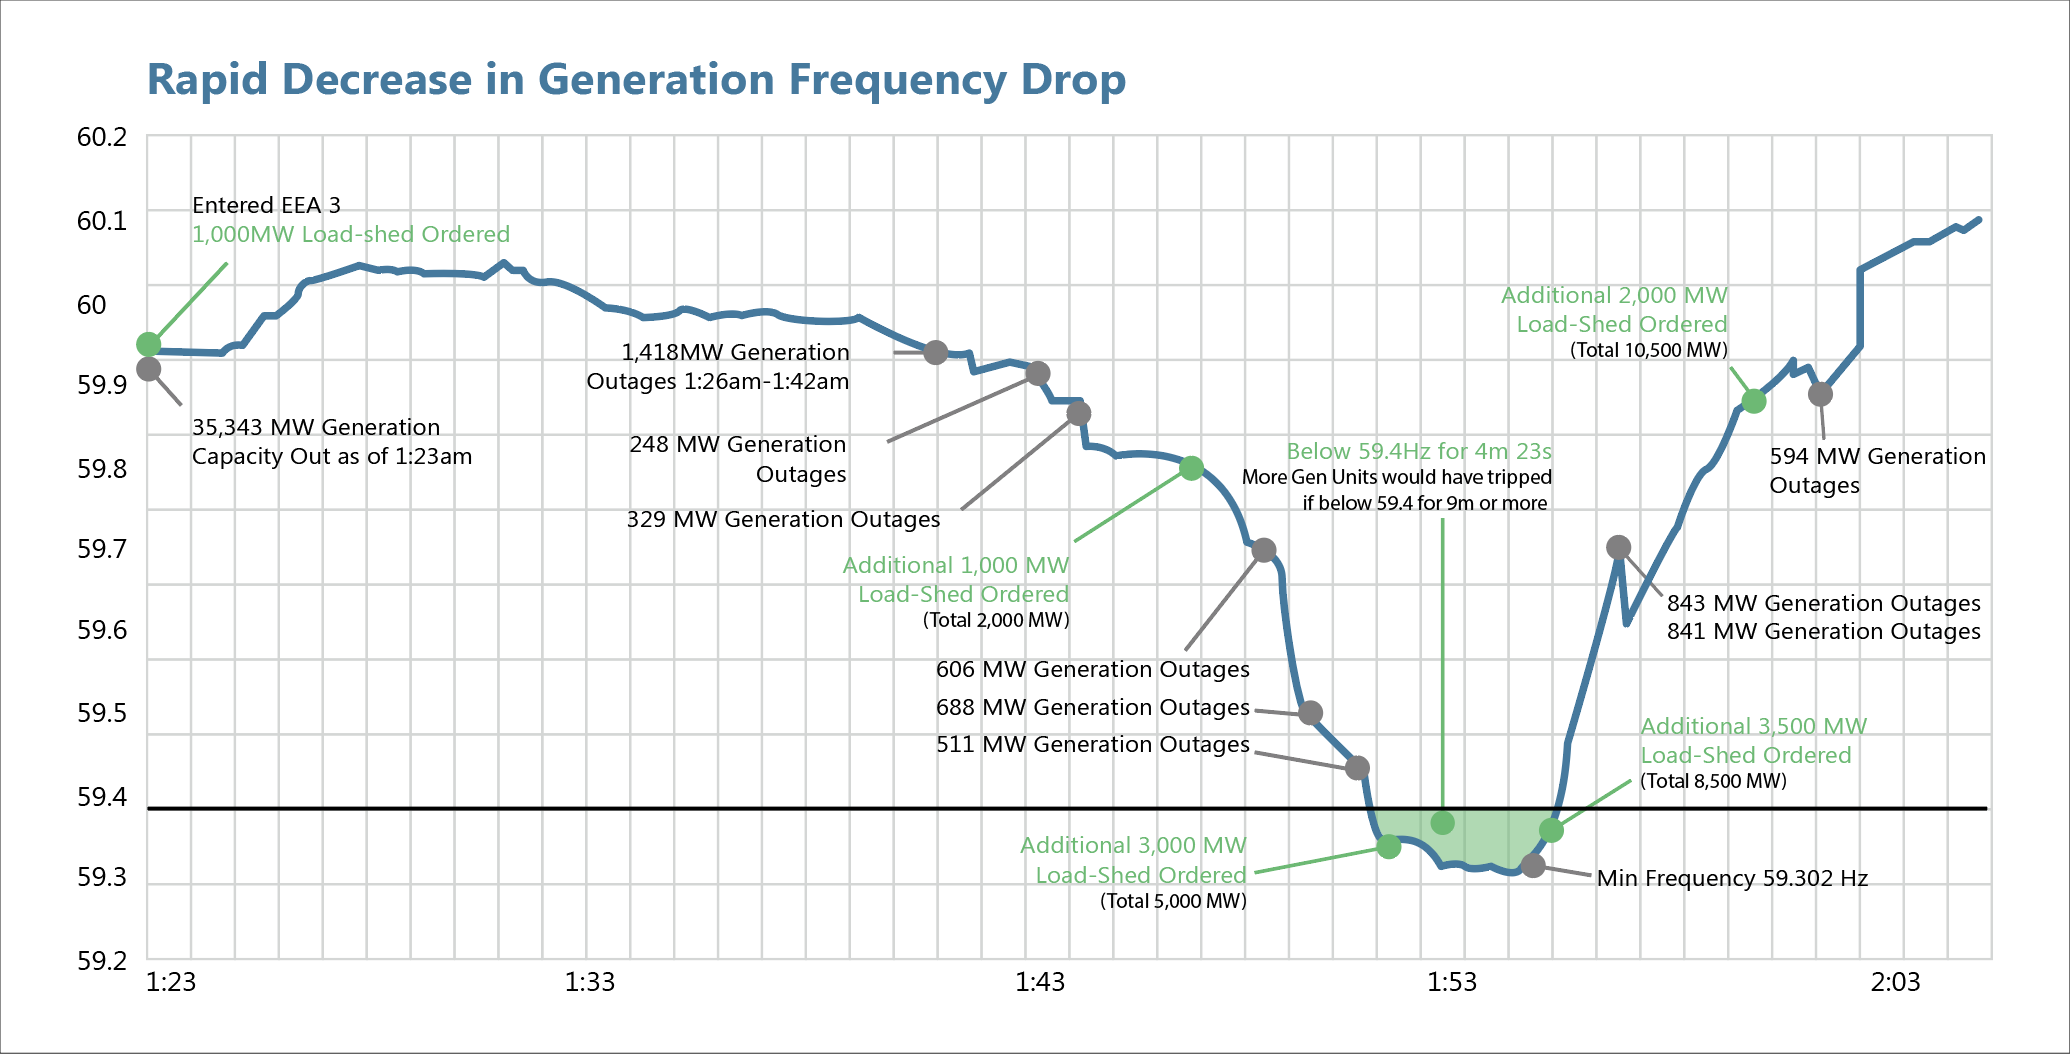 Texas Rapid Decrease in Generation Frequency Drop